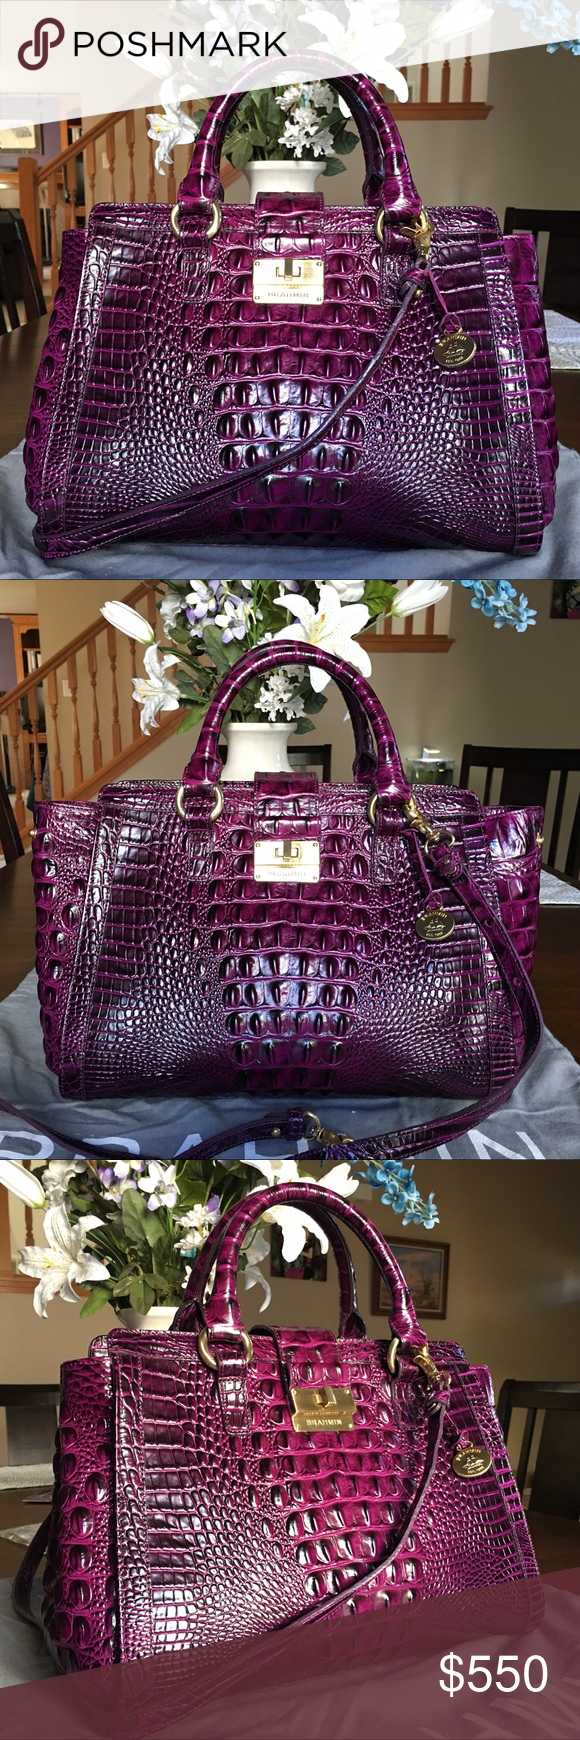 08b9bba79348 Brahmin IRIS PURPLE Annabelle Satchel Bag - Like new condition. No